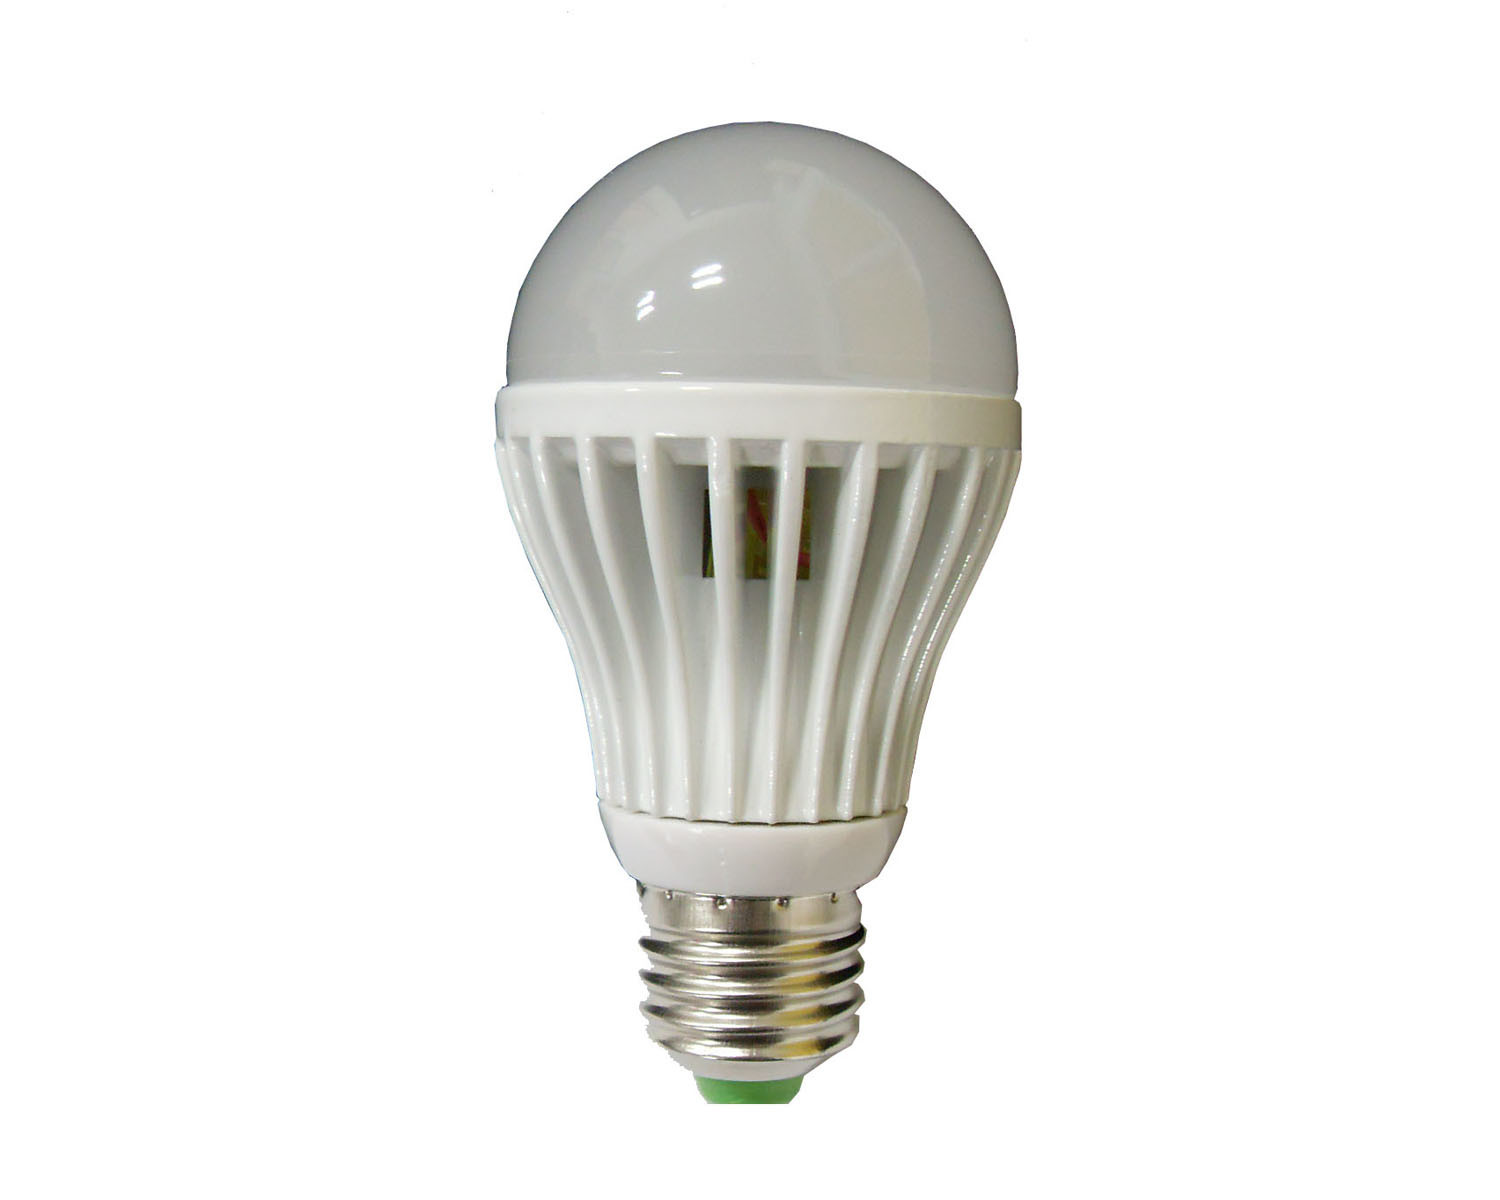 China led bulb light 9w 800lm china led bulbs lamp led bulb light A light bulb